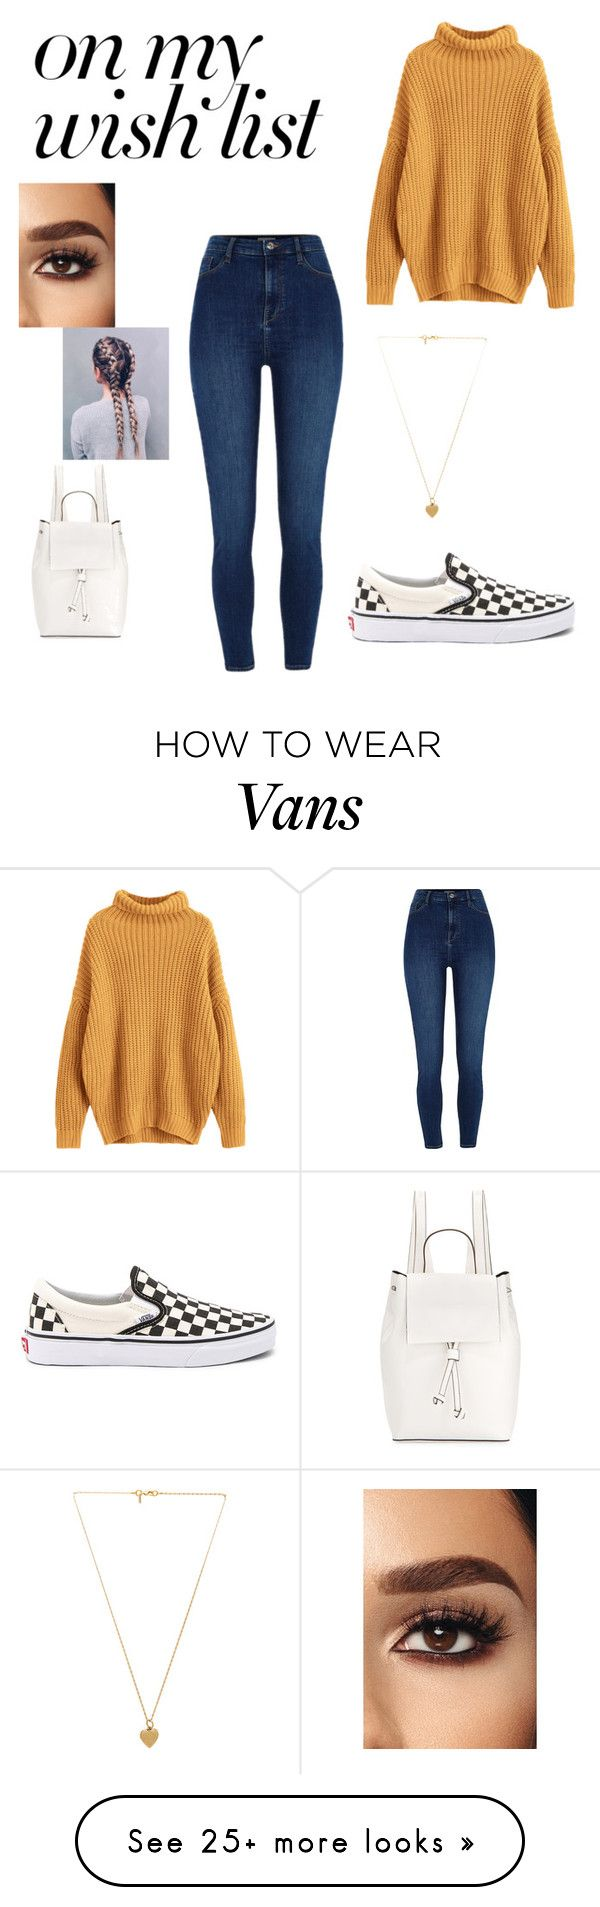 """""""#PolyPresents: Wish List"""" by vansalaz on Polyvore featuring River Island, Vans, French Connection, Vanessa Mooney, contestentry and polyPresents"""